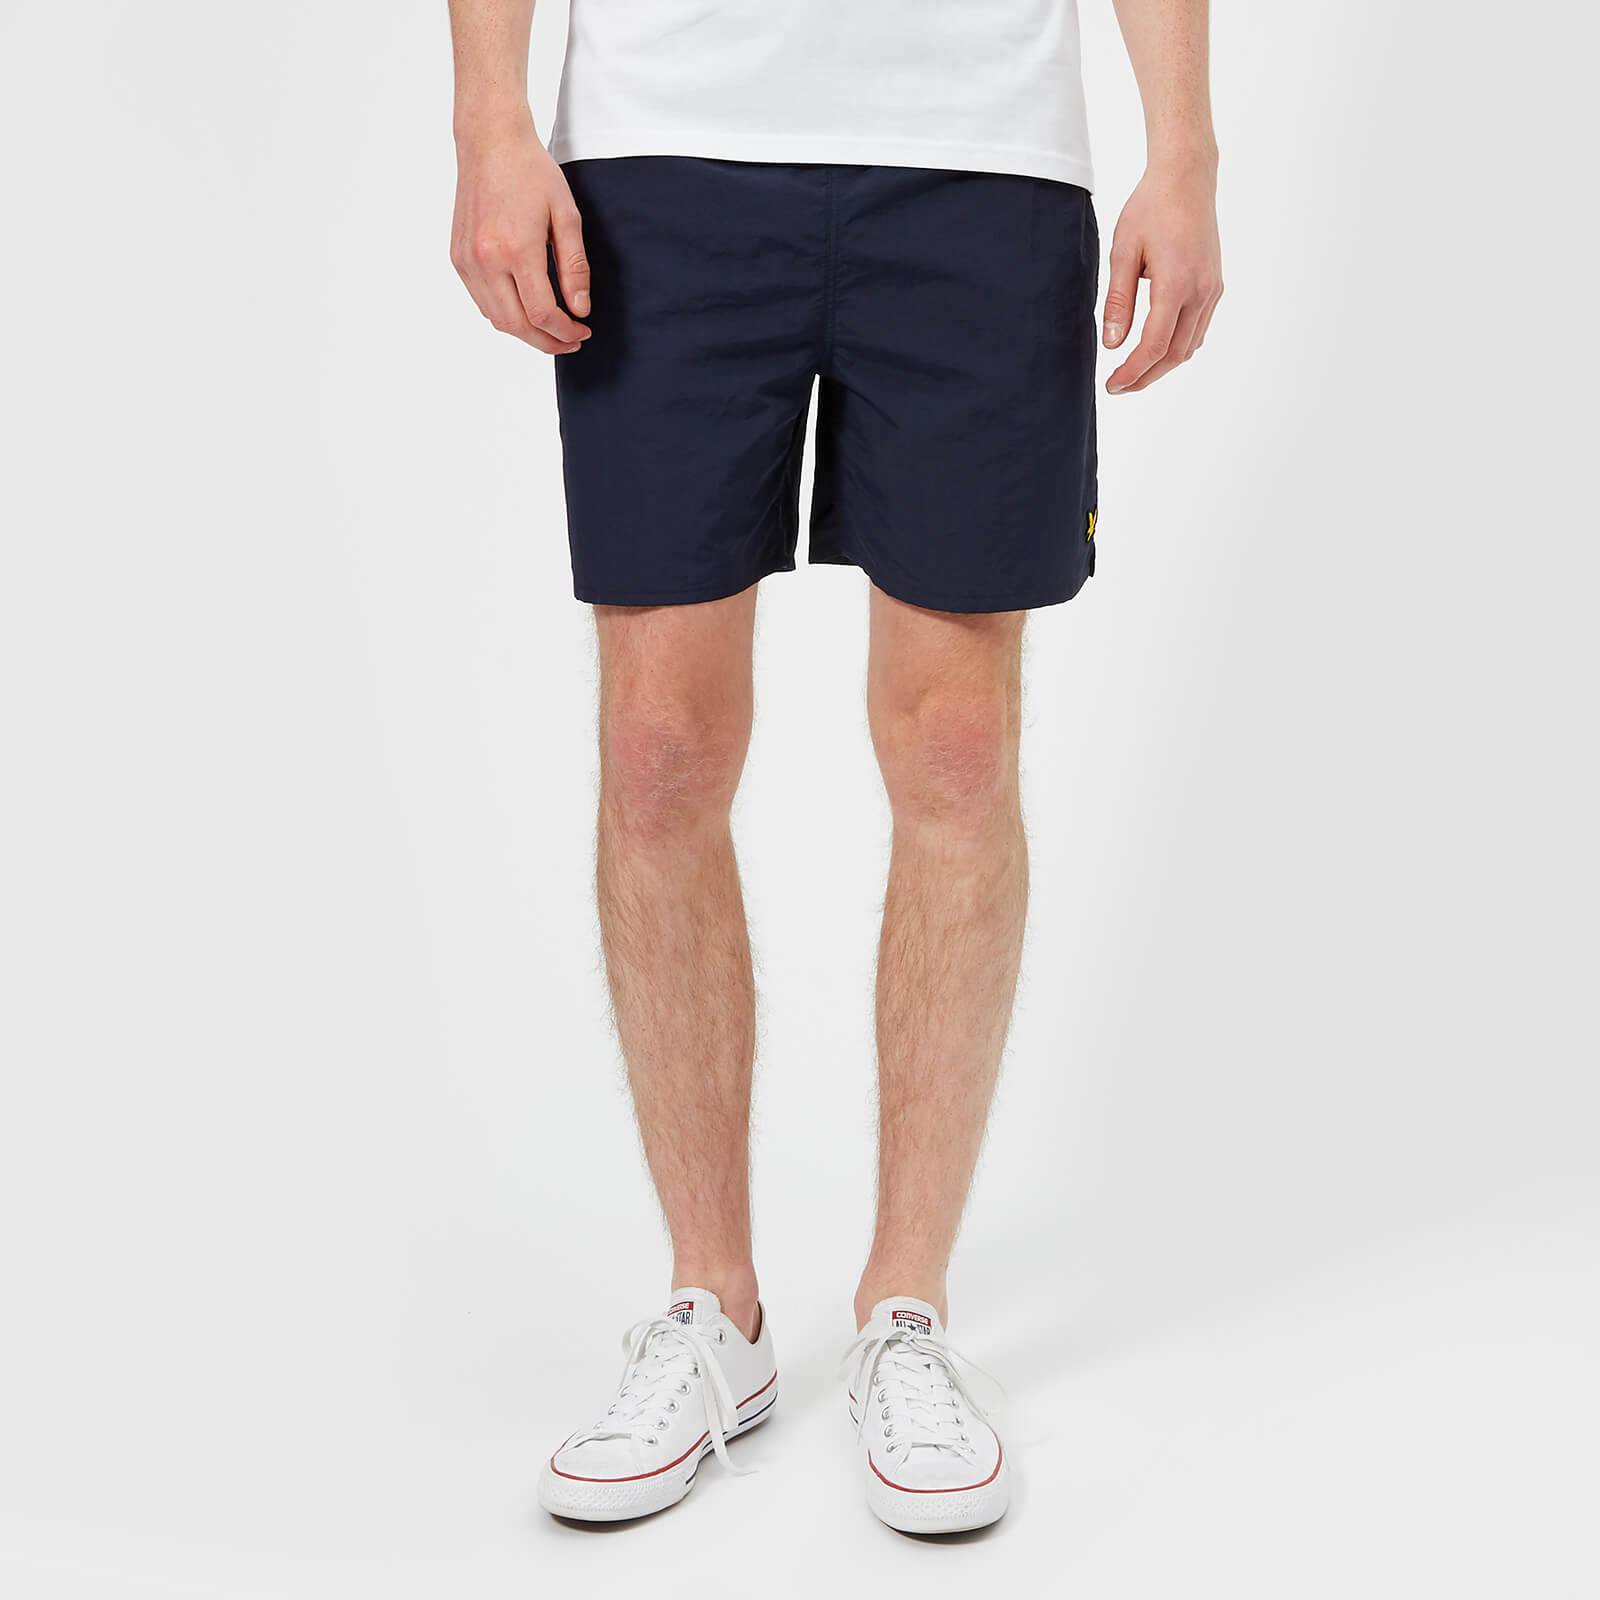 dd9c148cb7 Lyle & Scott Men's Plain Swim Shorts - Navy Mens Underwear | TheHut.com